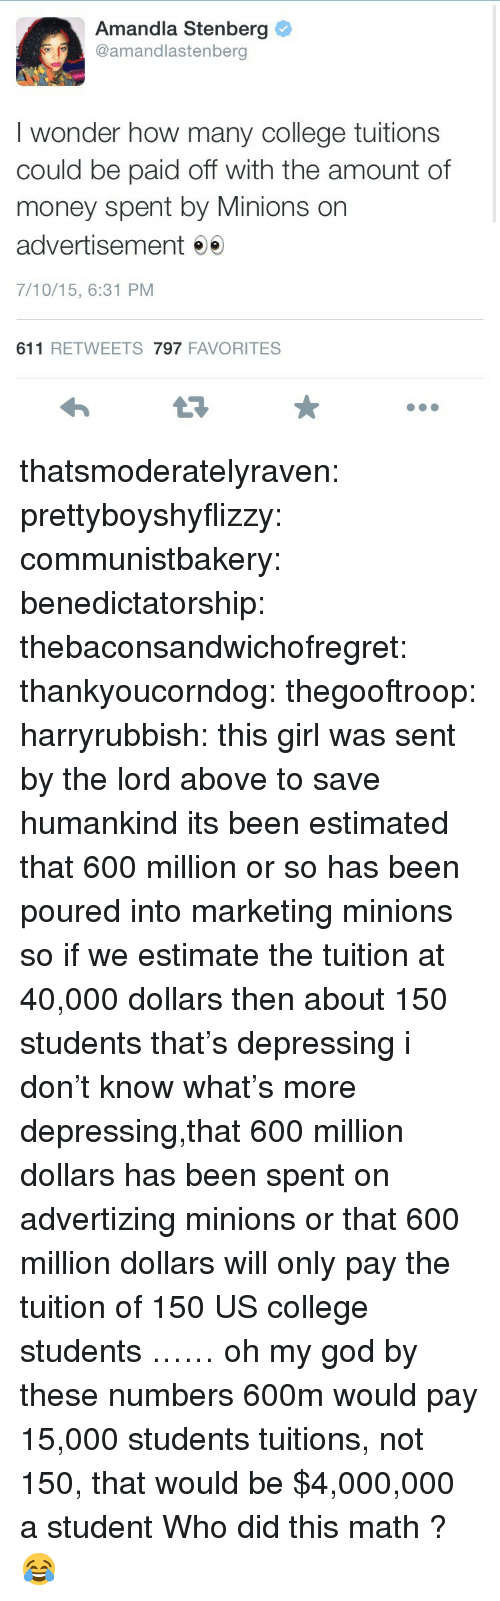 Estimate: Amandla Stenberg  @amandlastenberg  I wonder how many college tuitions  could be paid off with the amount of  money spent by Minions on  advertisement e  7/10/15, 6:31 PM  611 RETWEETS 797 FAVORITES thatsmoderatelyraven: prettyboyshyflizzy:   communistbakery:   benedictatorship:  thebaconsandwichofregret:   thankyoucorndog:   thegooftroop:   harryrubbish:  this girl was sent by the lord above to save humankind  its been estimated that 600 million or so has been poured into marketing minions so if we estimate the tuition at 40,000 dollars then about 150 students   that's depressing   i don't know what's more depressing,that 600 million dollars has been spent on advertizing minions or that 600 million dollars will only pay the tuition of 150 US college students   …… oh my god  by these numbers 600m would pay 15,000 students tuitions, not 150, that would be $4,000,000 a student   Who did this math ? 😂